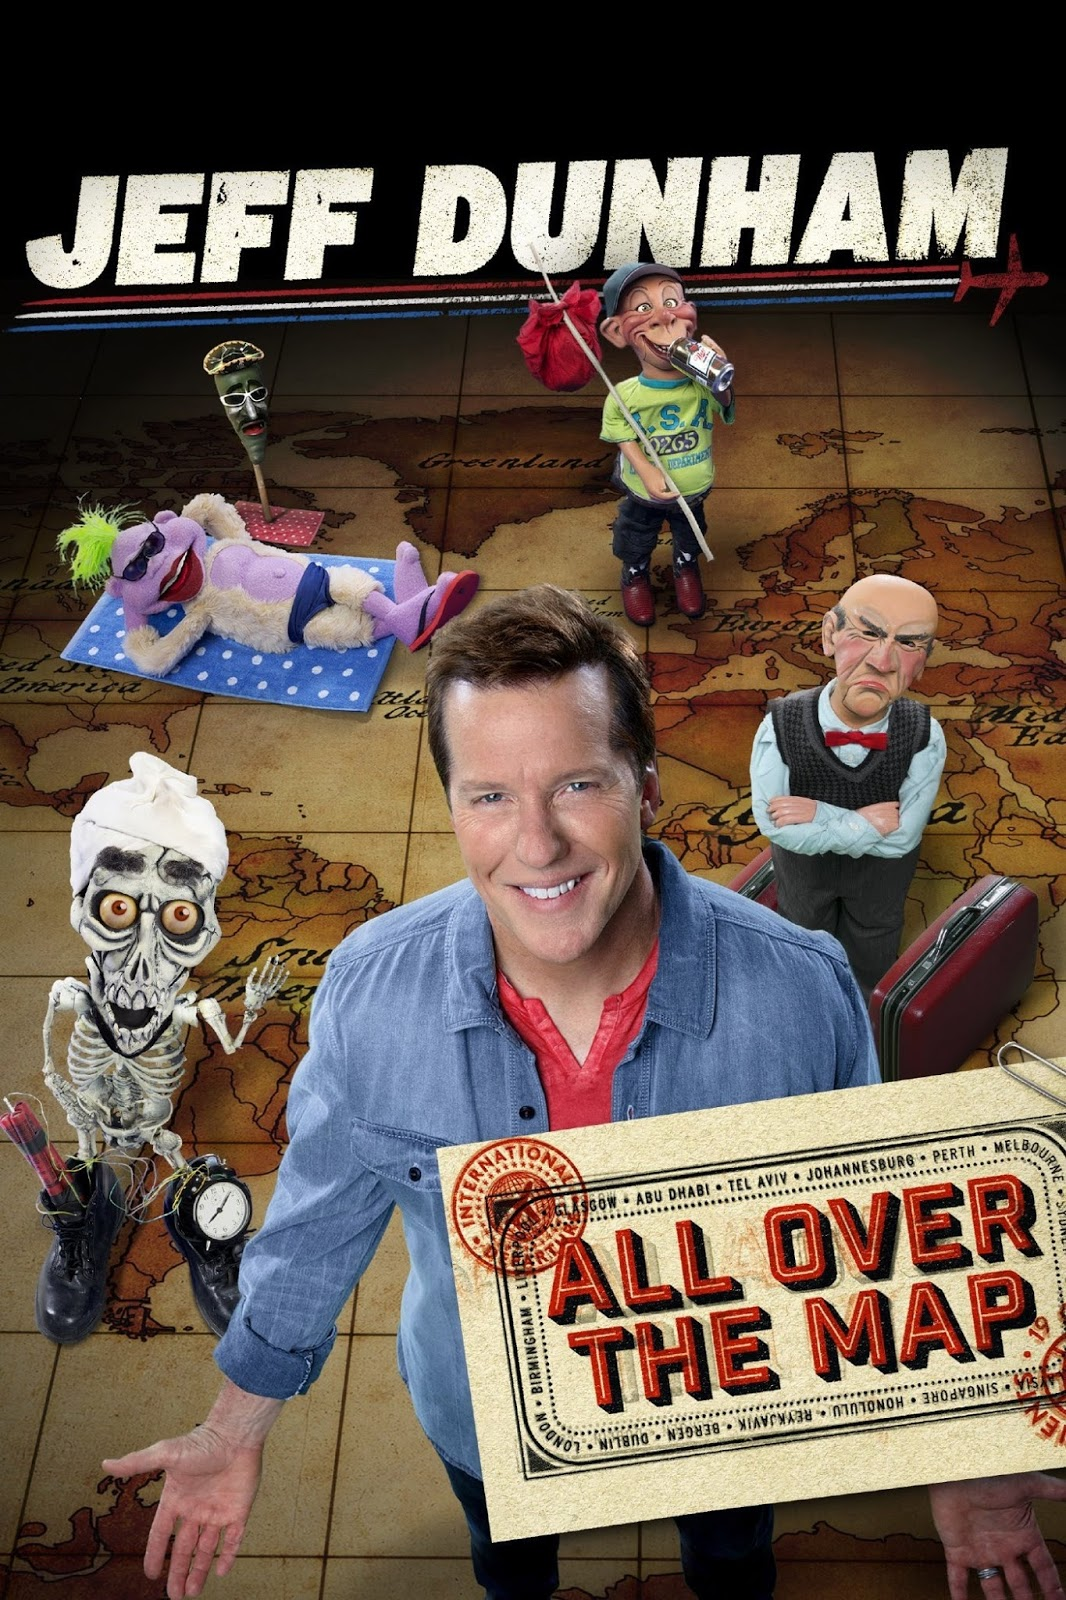 Jeff Dunham: All Over the Map (2014) ταινιες online seires oipeirates greek subs